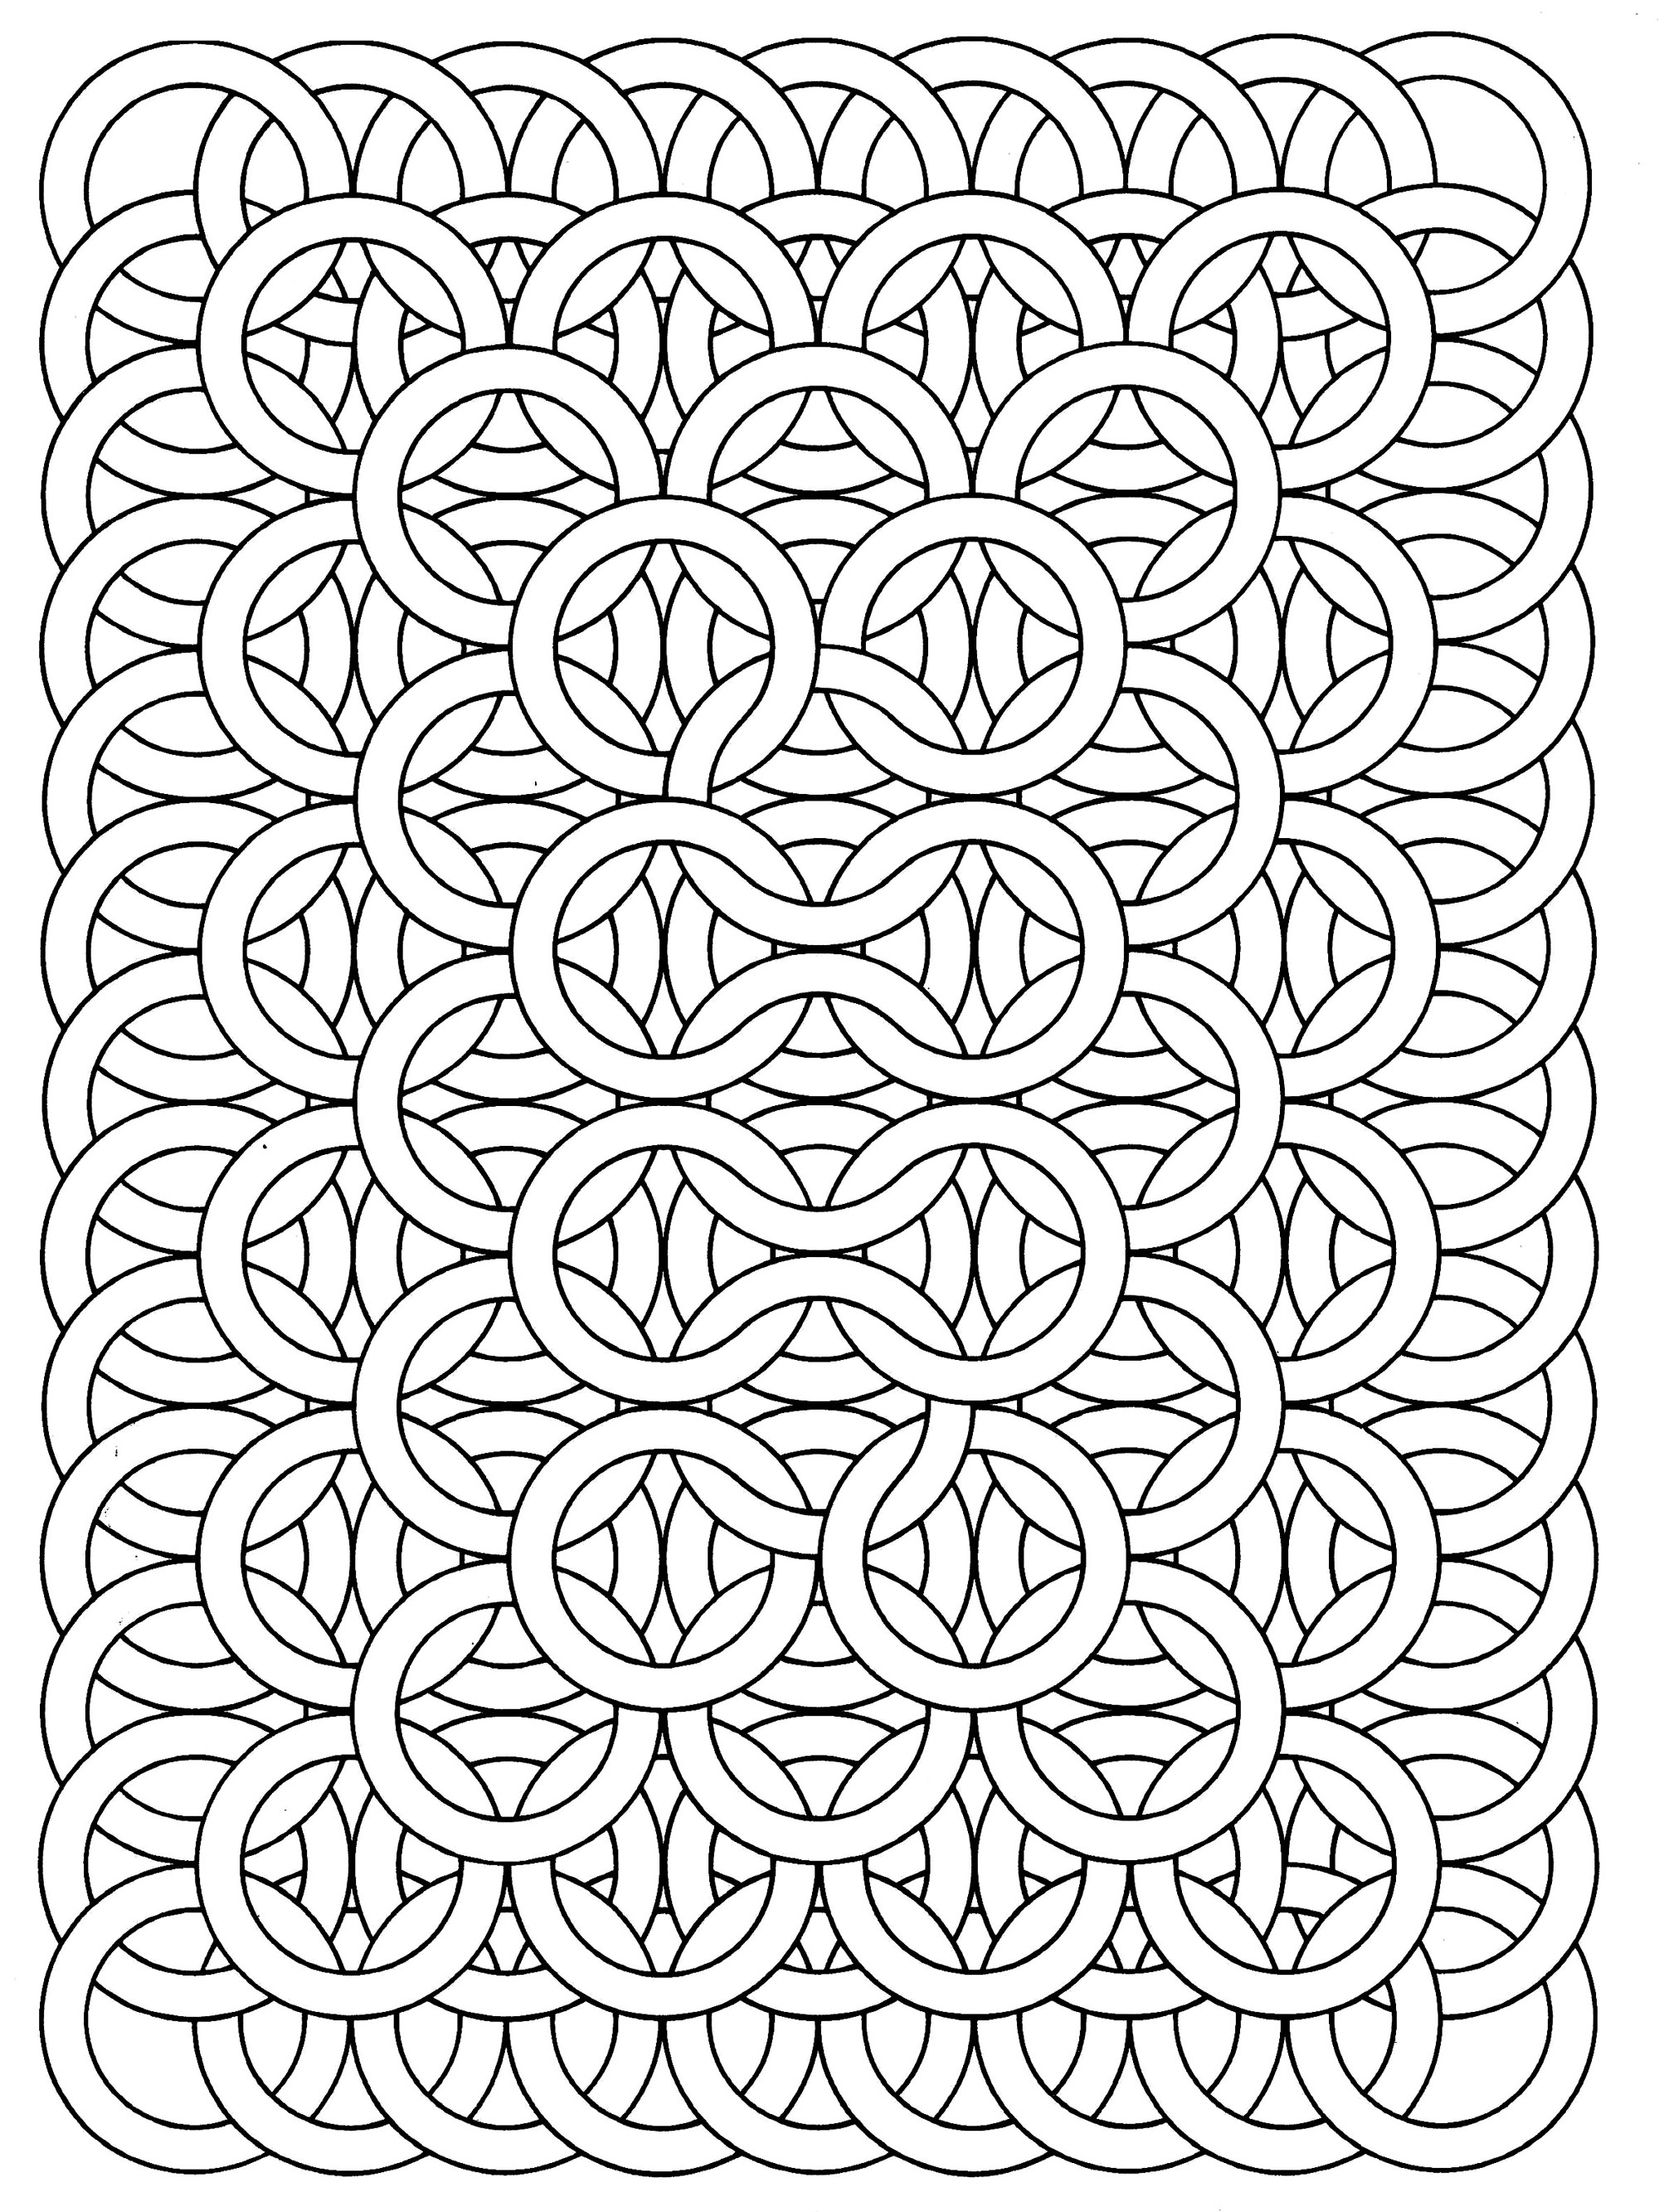 What excellent free easy coloring pages for adults seems excellent